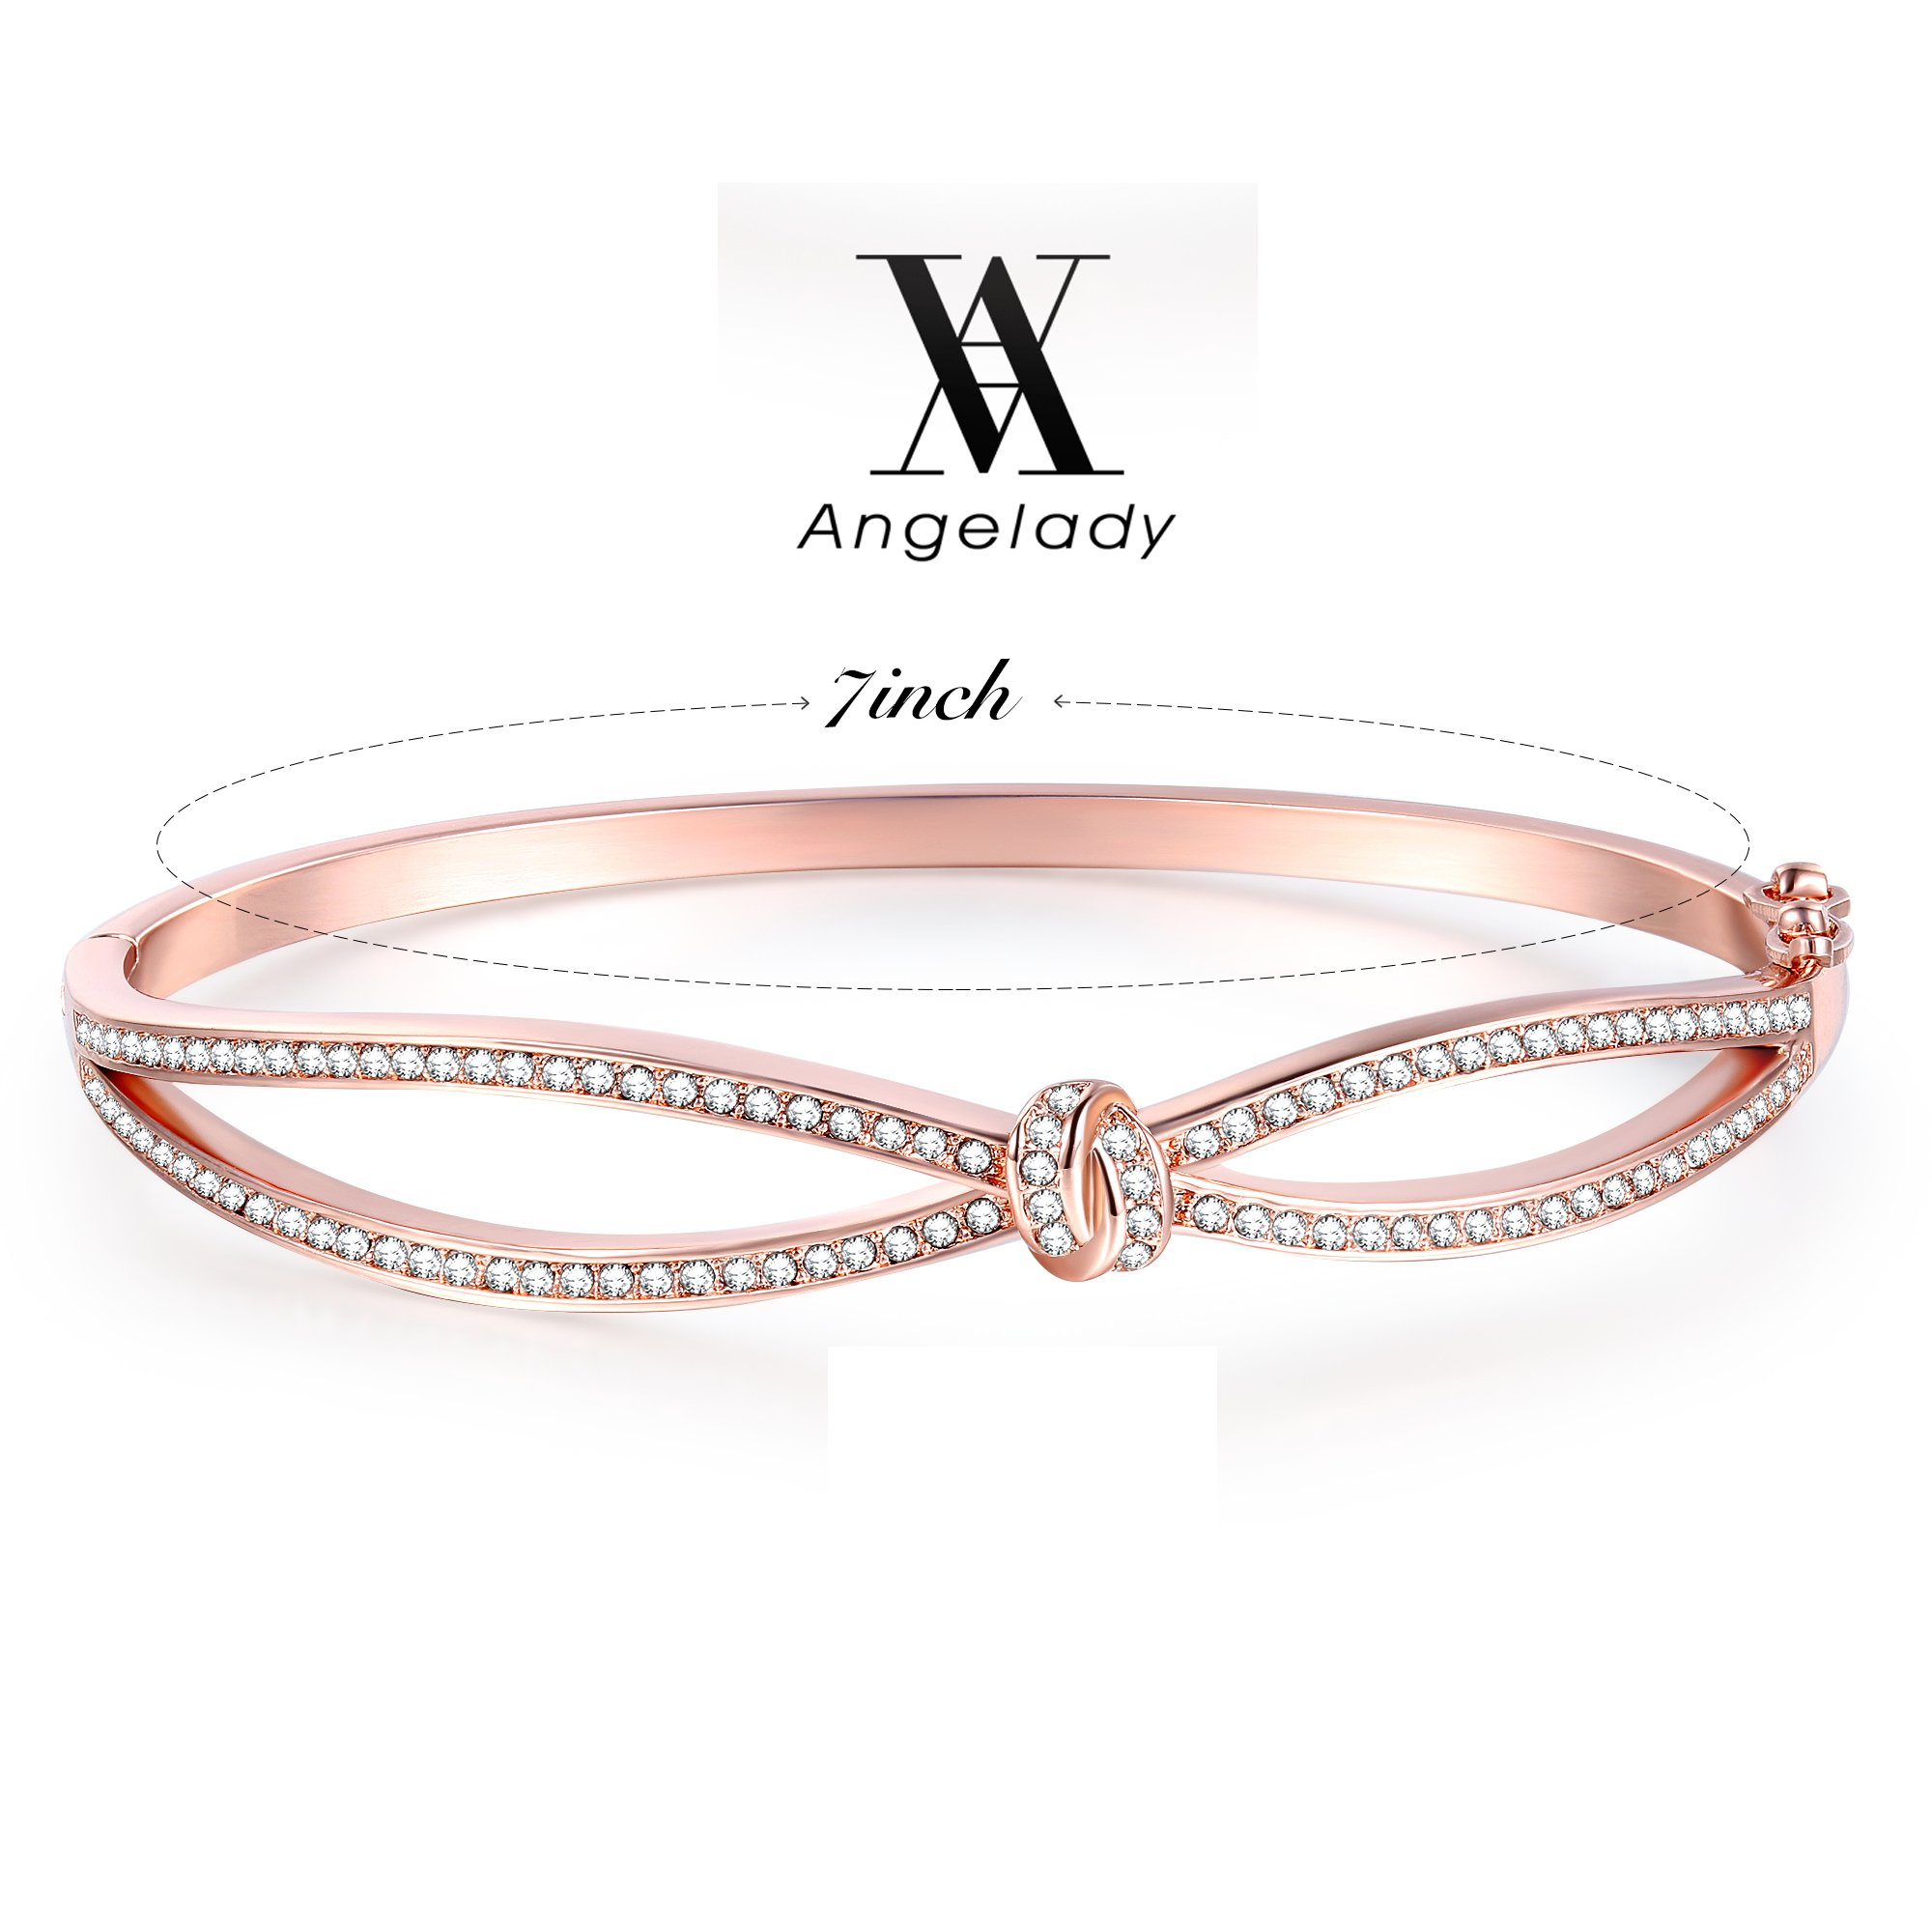 Angelady Classic Rose Gold Bangles Infinity Bracelets for Womens Birthday Jewellery, Crystals from SWAROVSKI- Included a Gift Box(Rosegold)